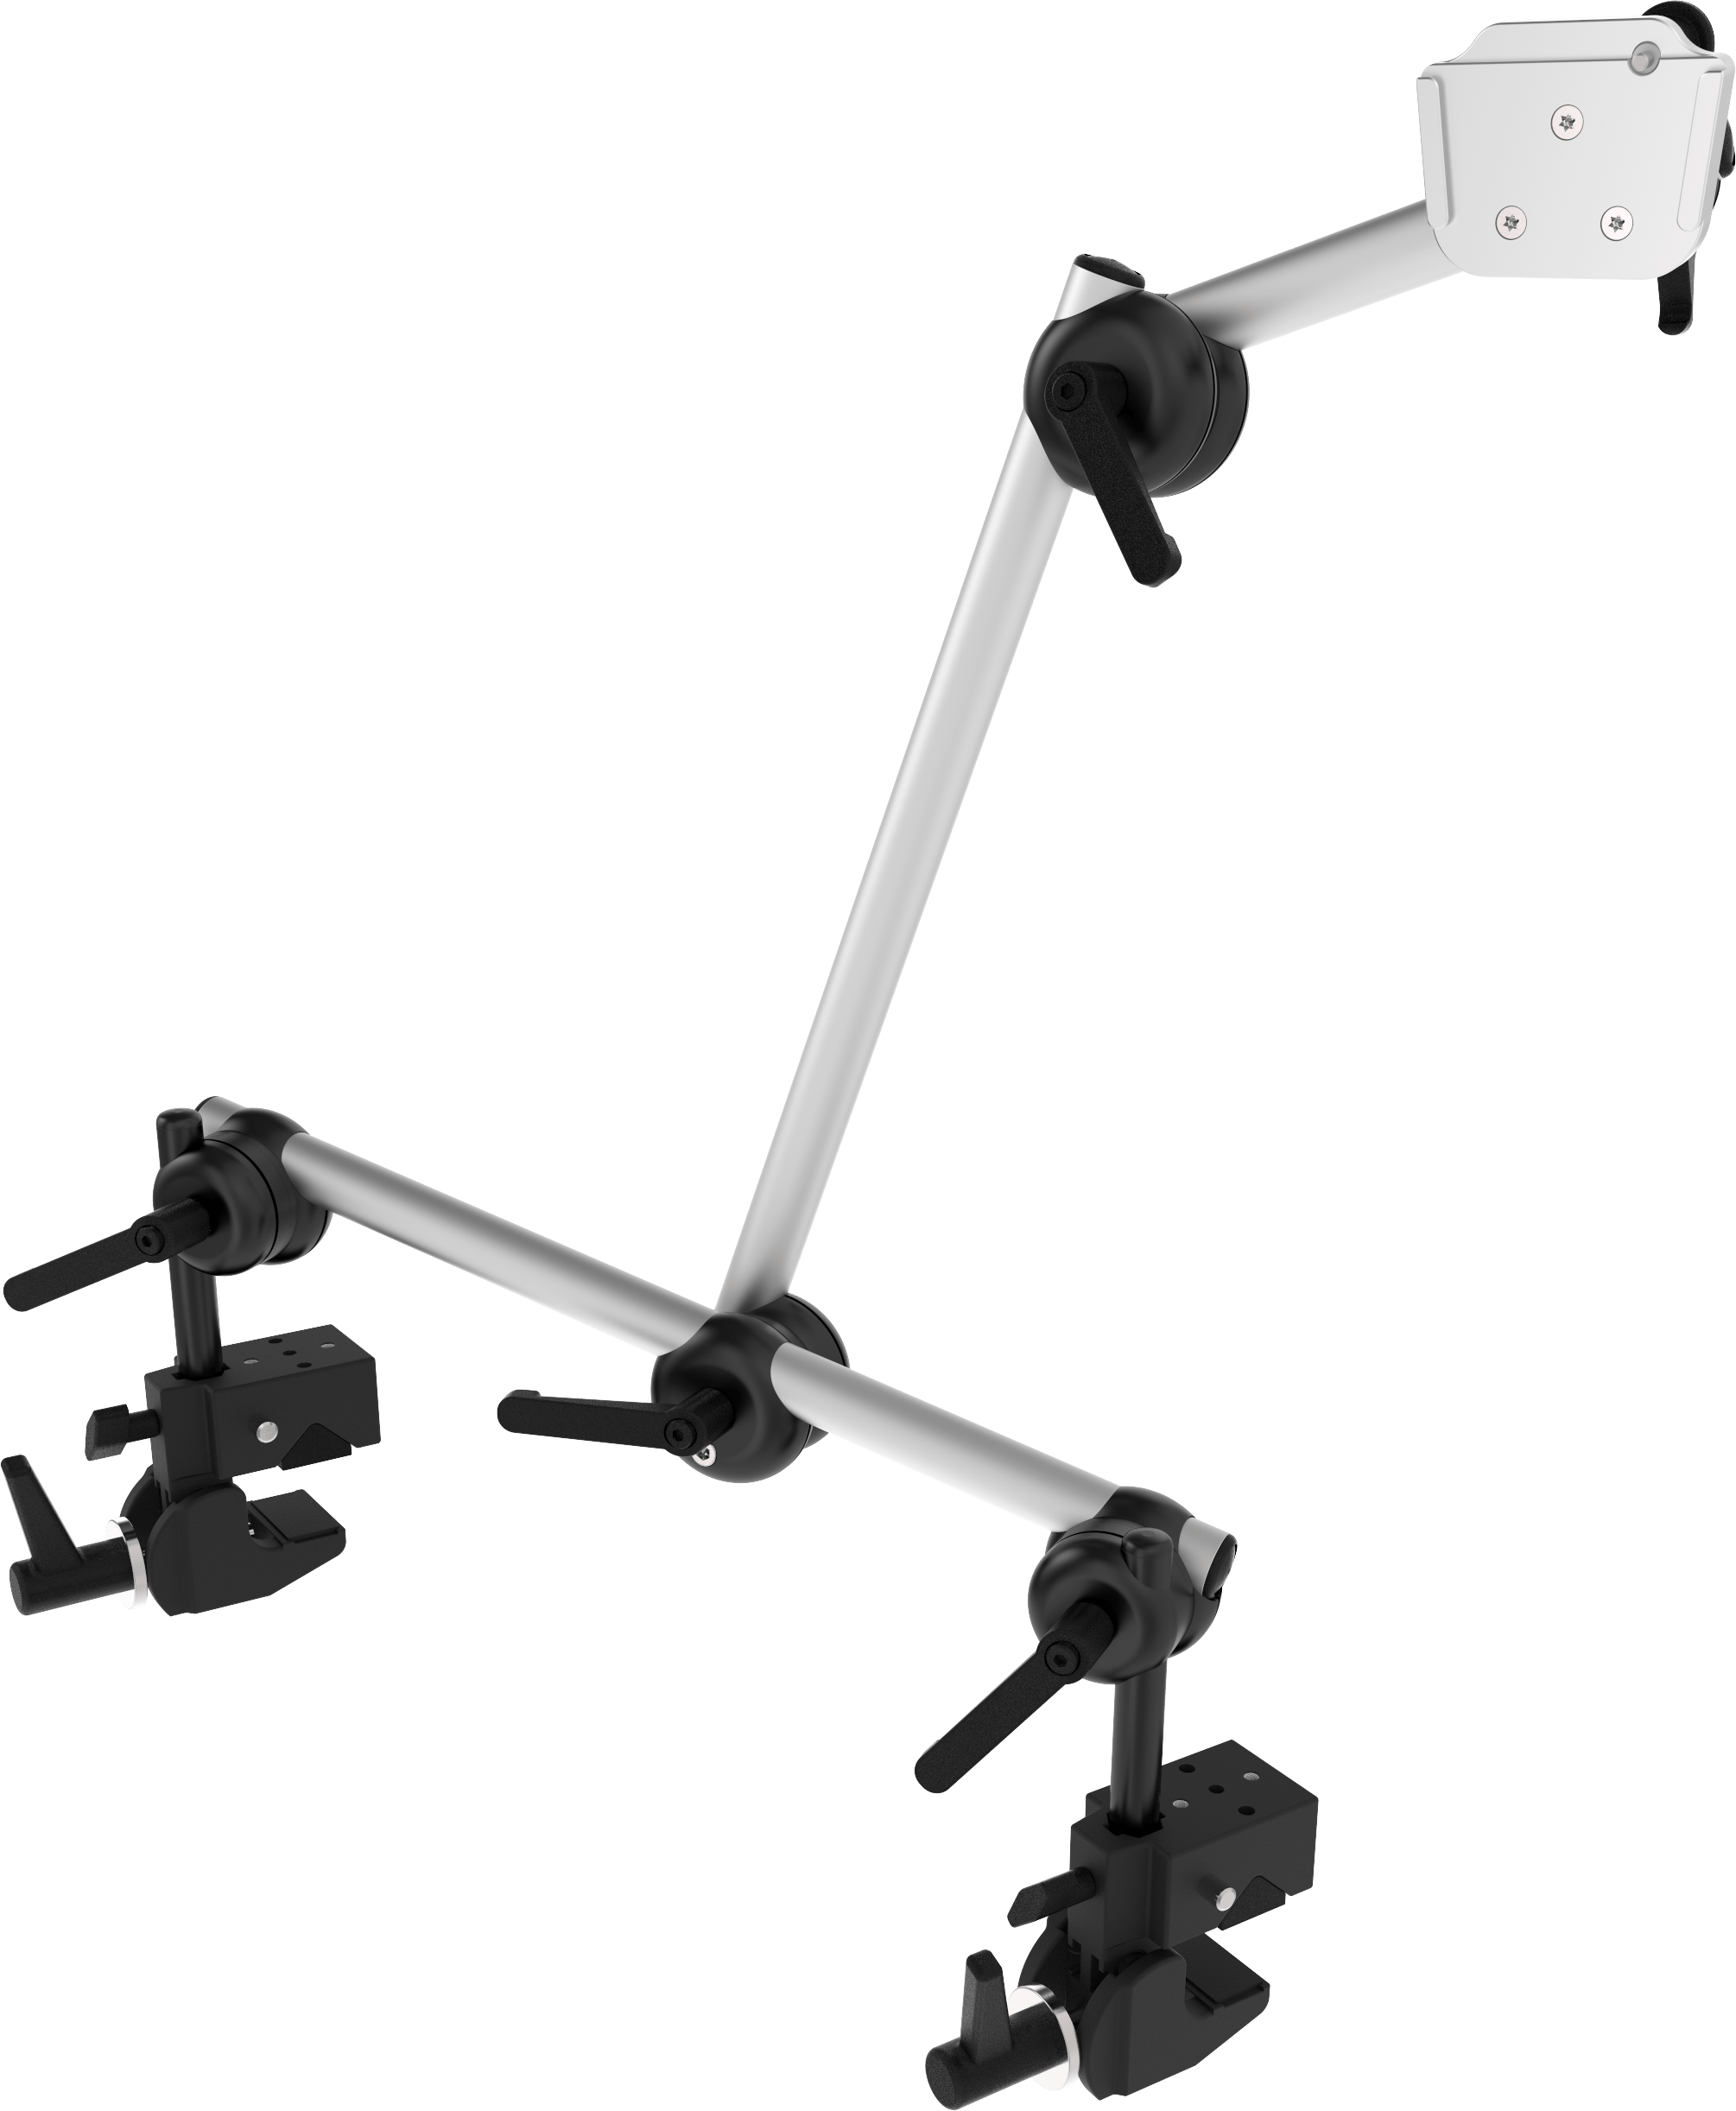 Durable Monty 3D table mount system with dual corner clamp for heavy devices, by Rehadapt